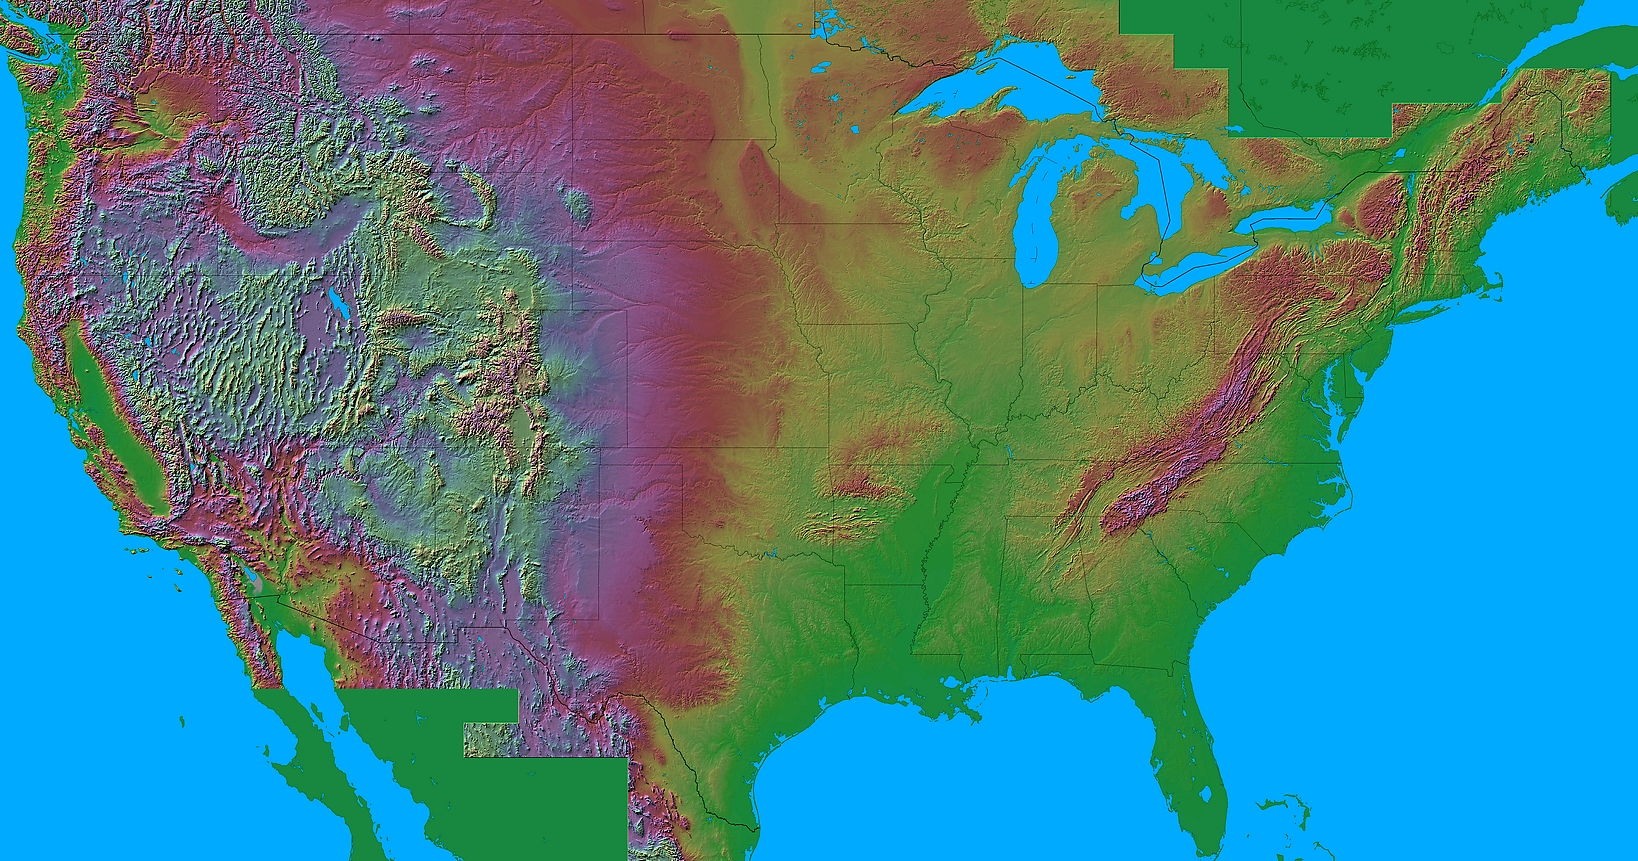 Relief Map Of United States.Shaded Relief Maps Of The United States